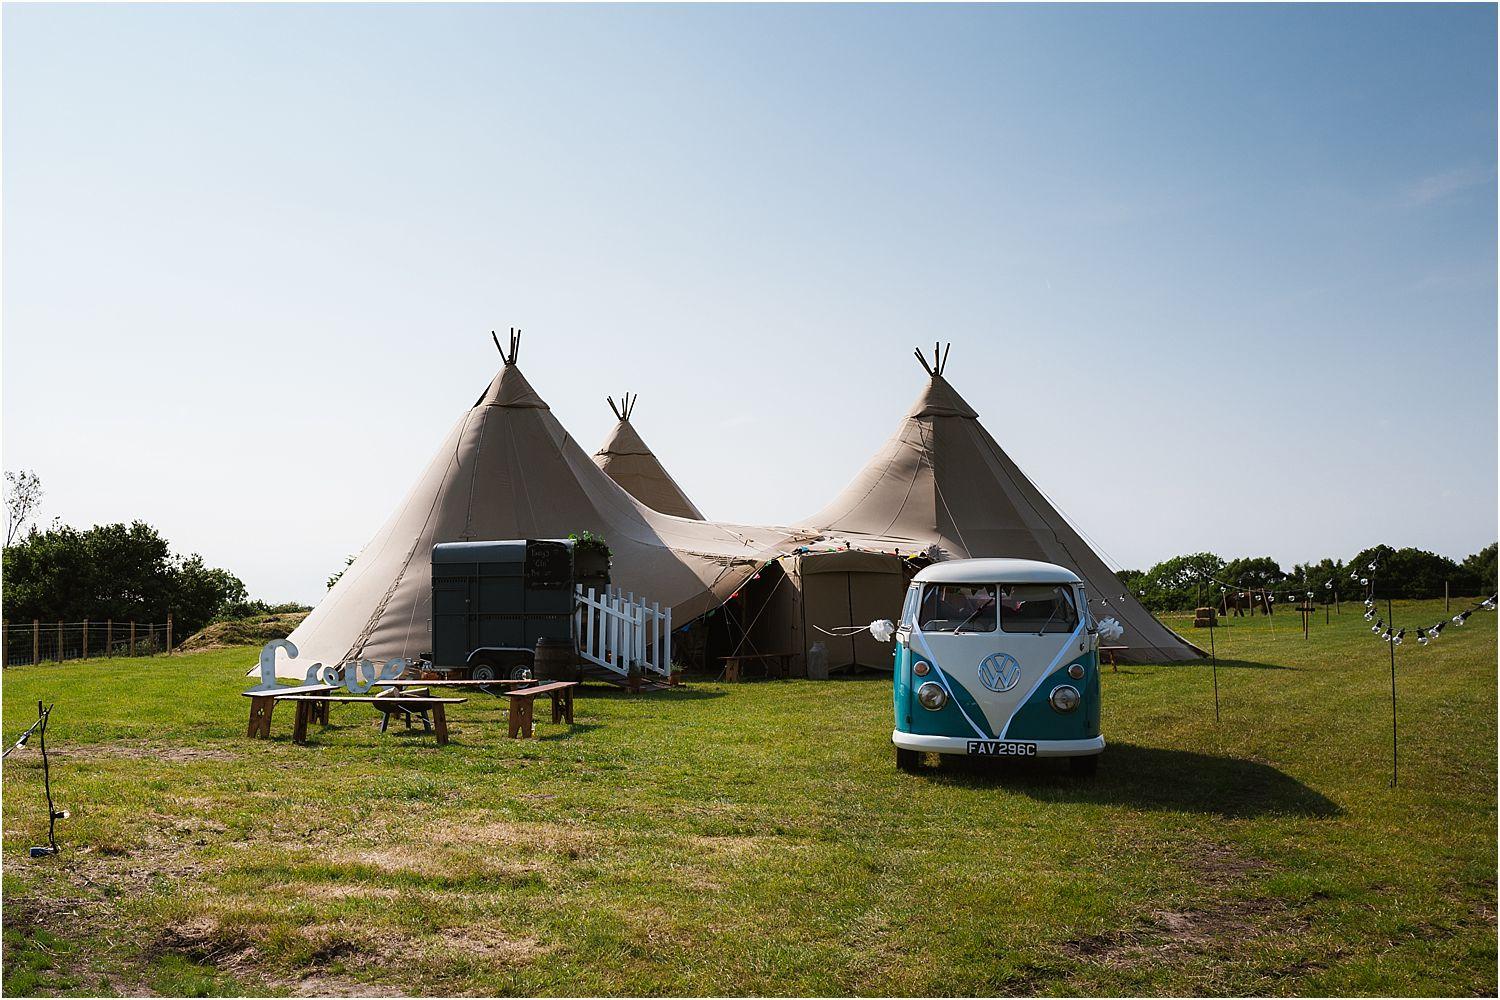 Tipis, by Betty's Tipis and Camper van from Nostalgic Campers at Rural Lancashire wedding